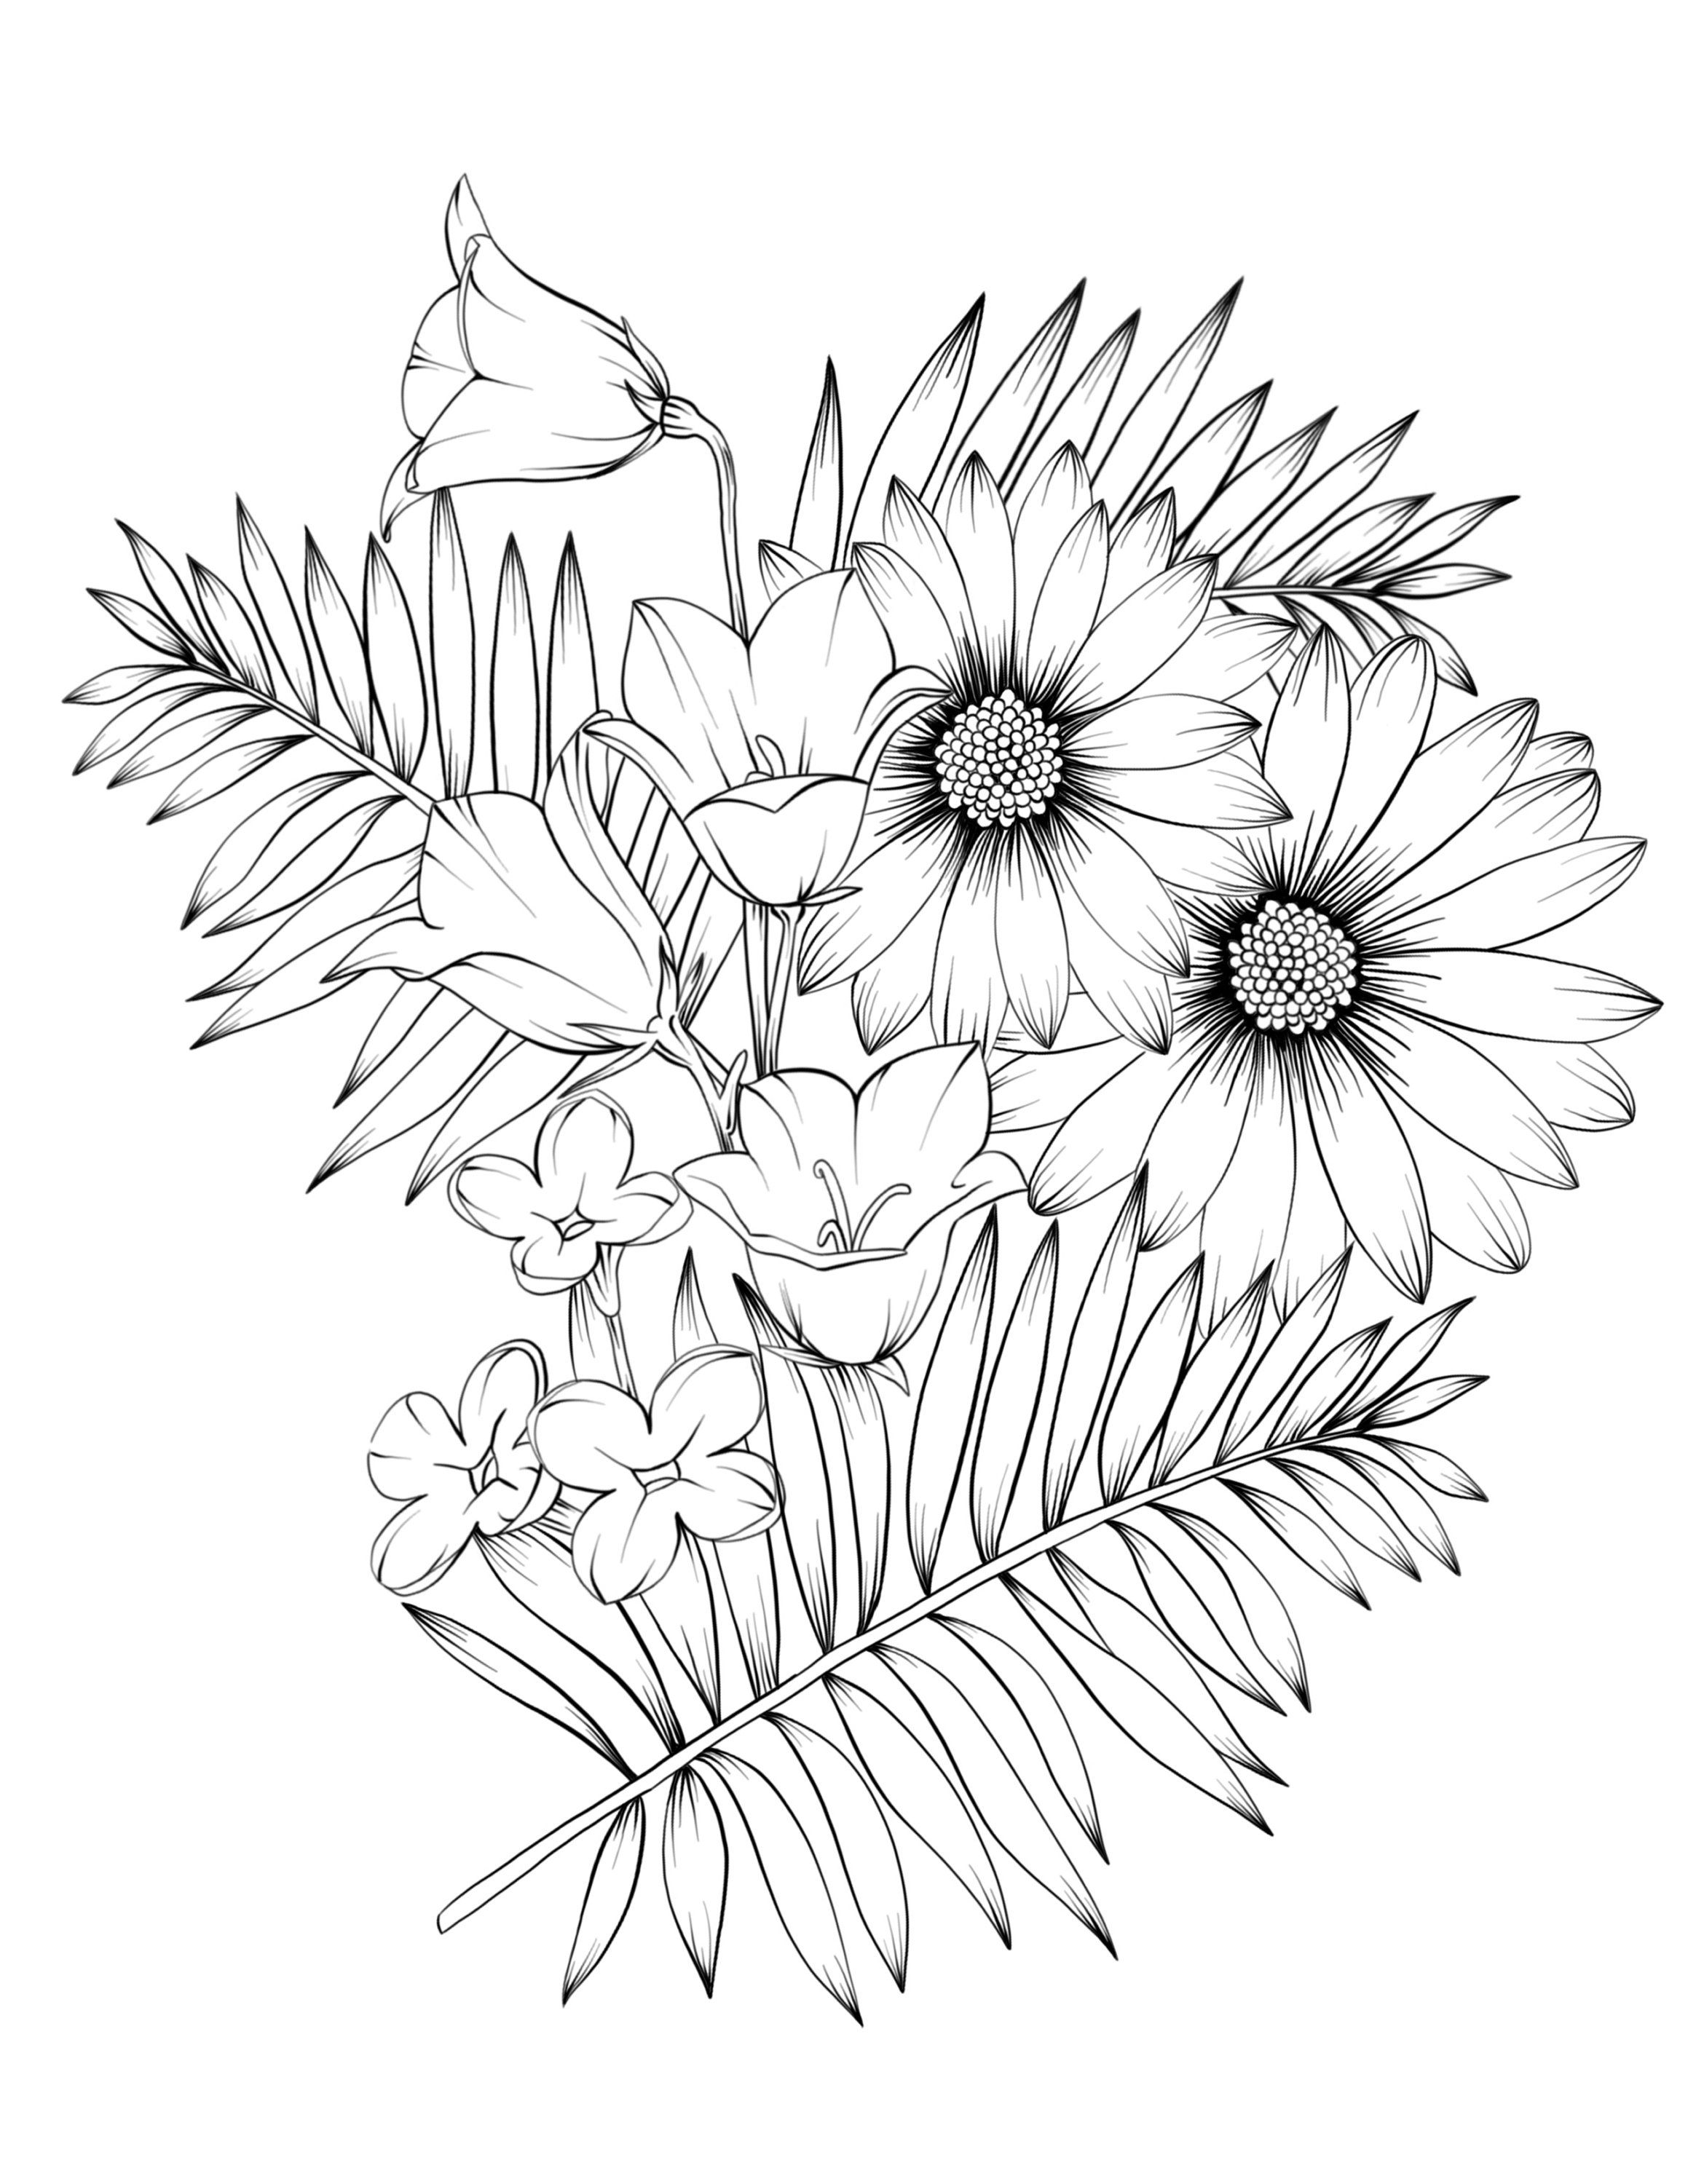 Adult Coloring Book Botanicum Flowers Digital Coloring 15 Pages